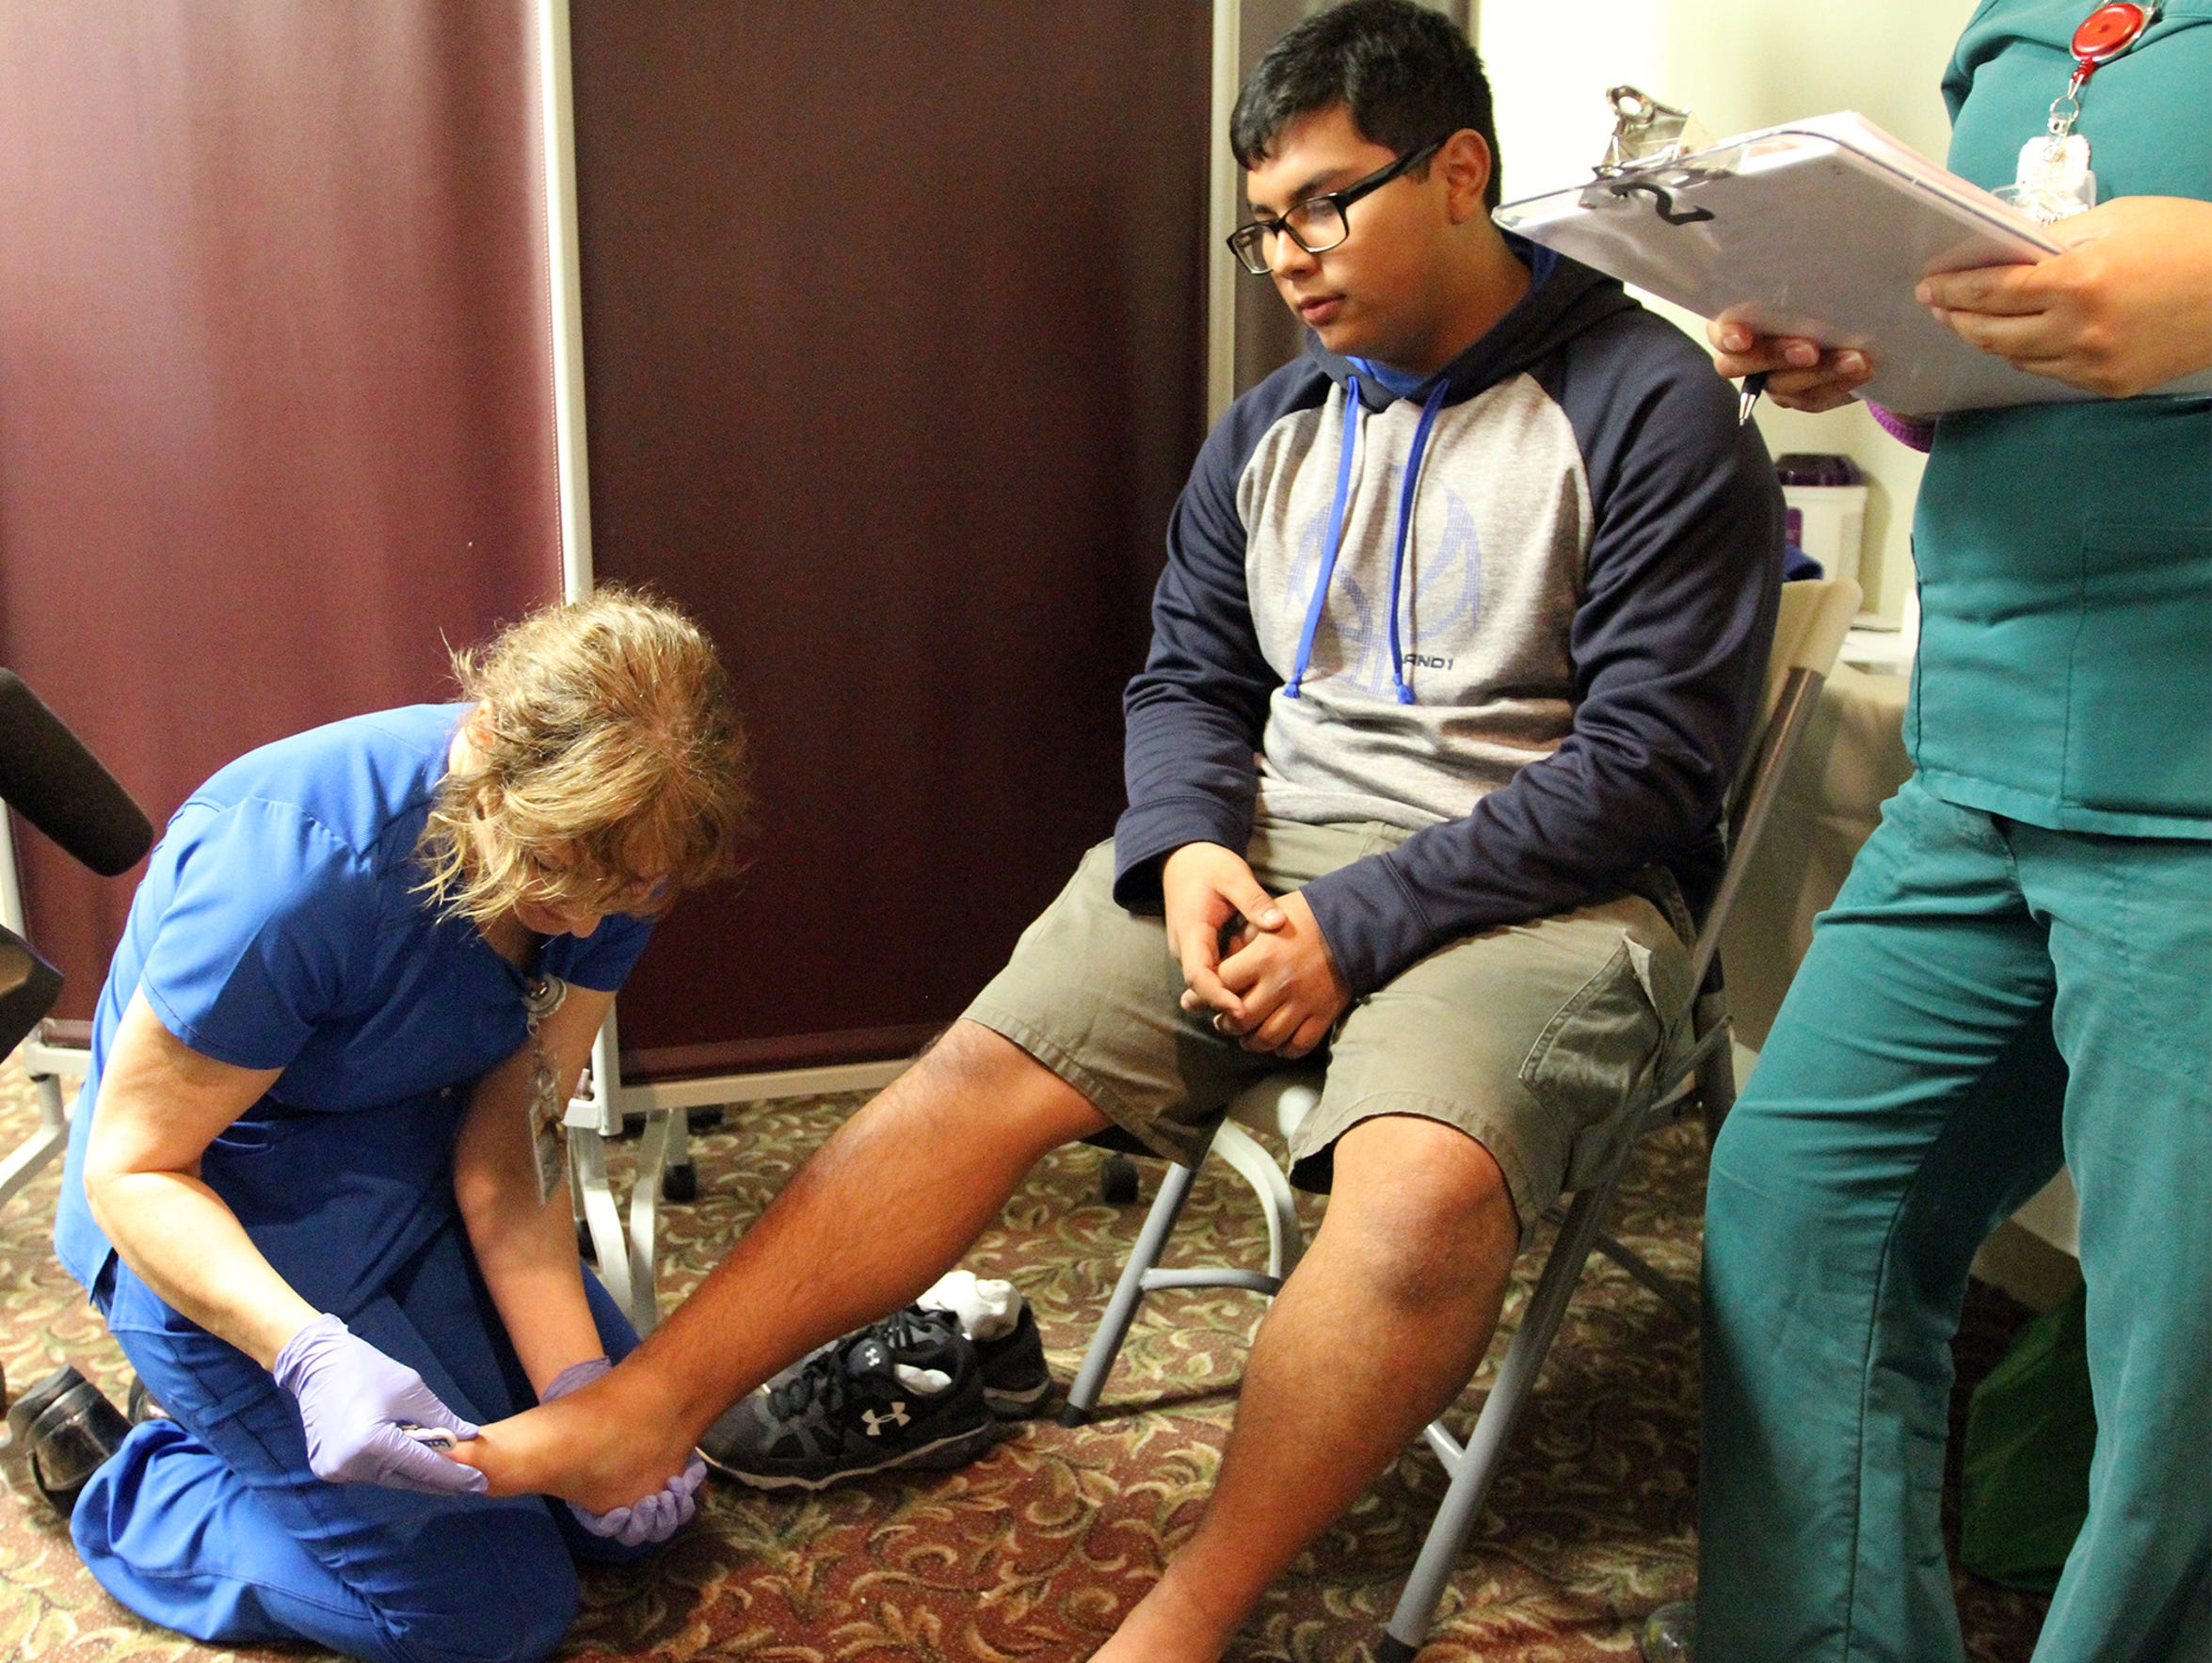 Edward Martinez, 19, of Brownsville gets his feet checked